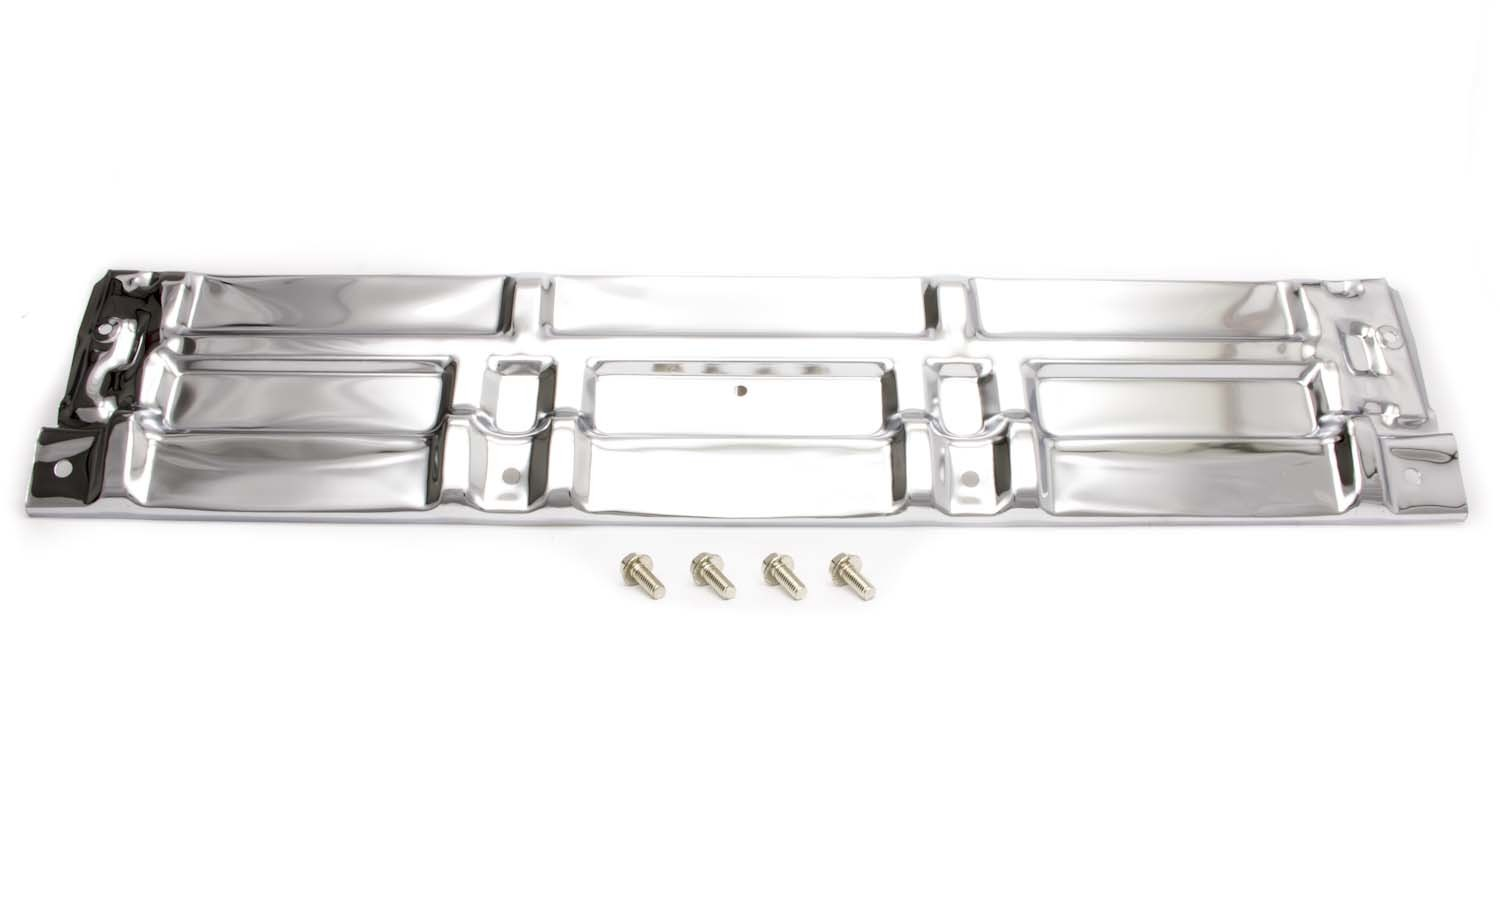 Racing Power Co-packaged 73-80 GM P/U Radiator Support